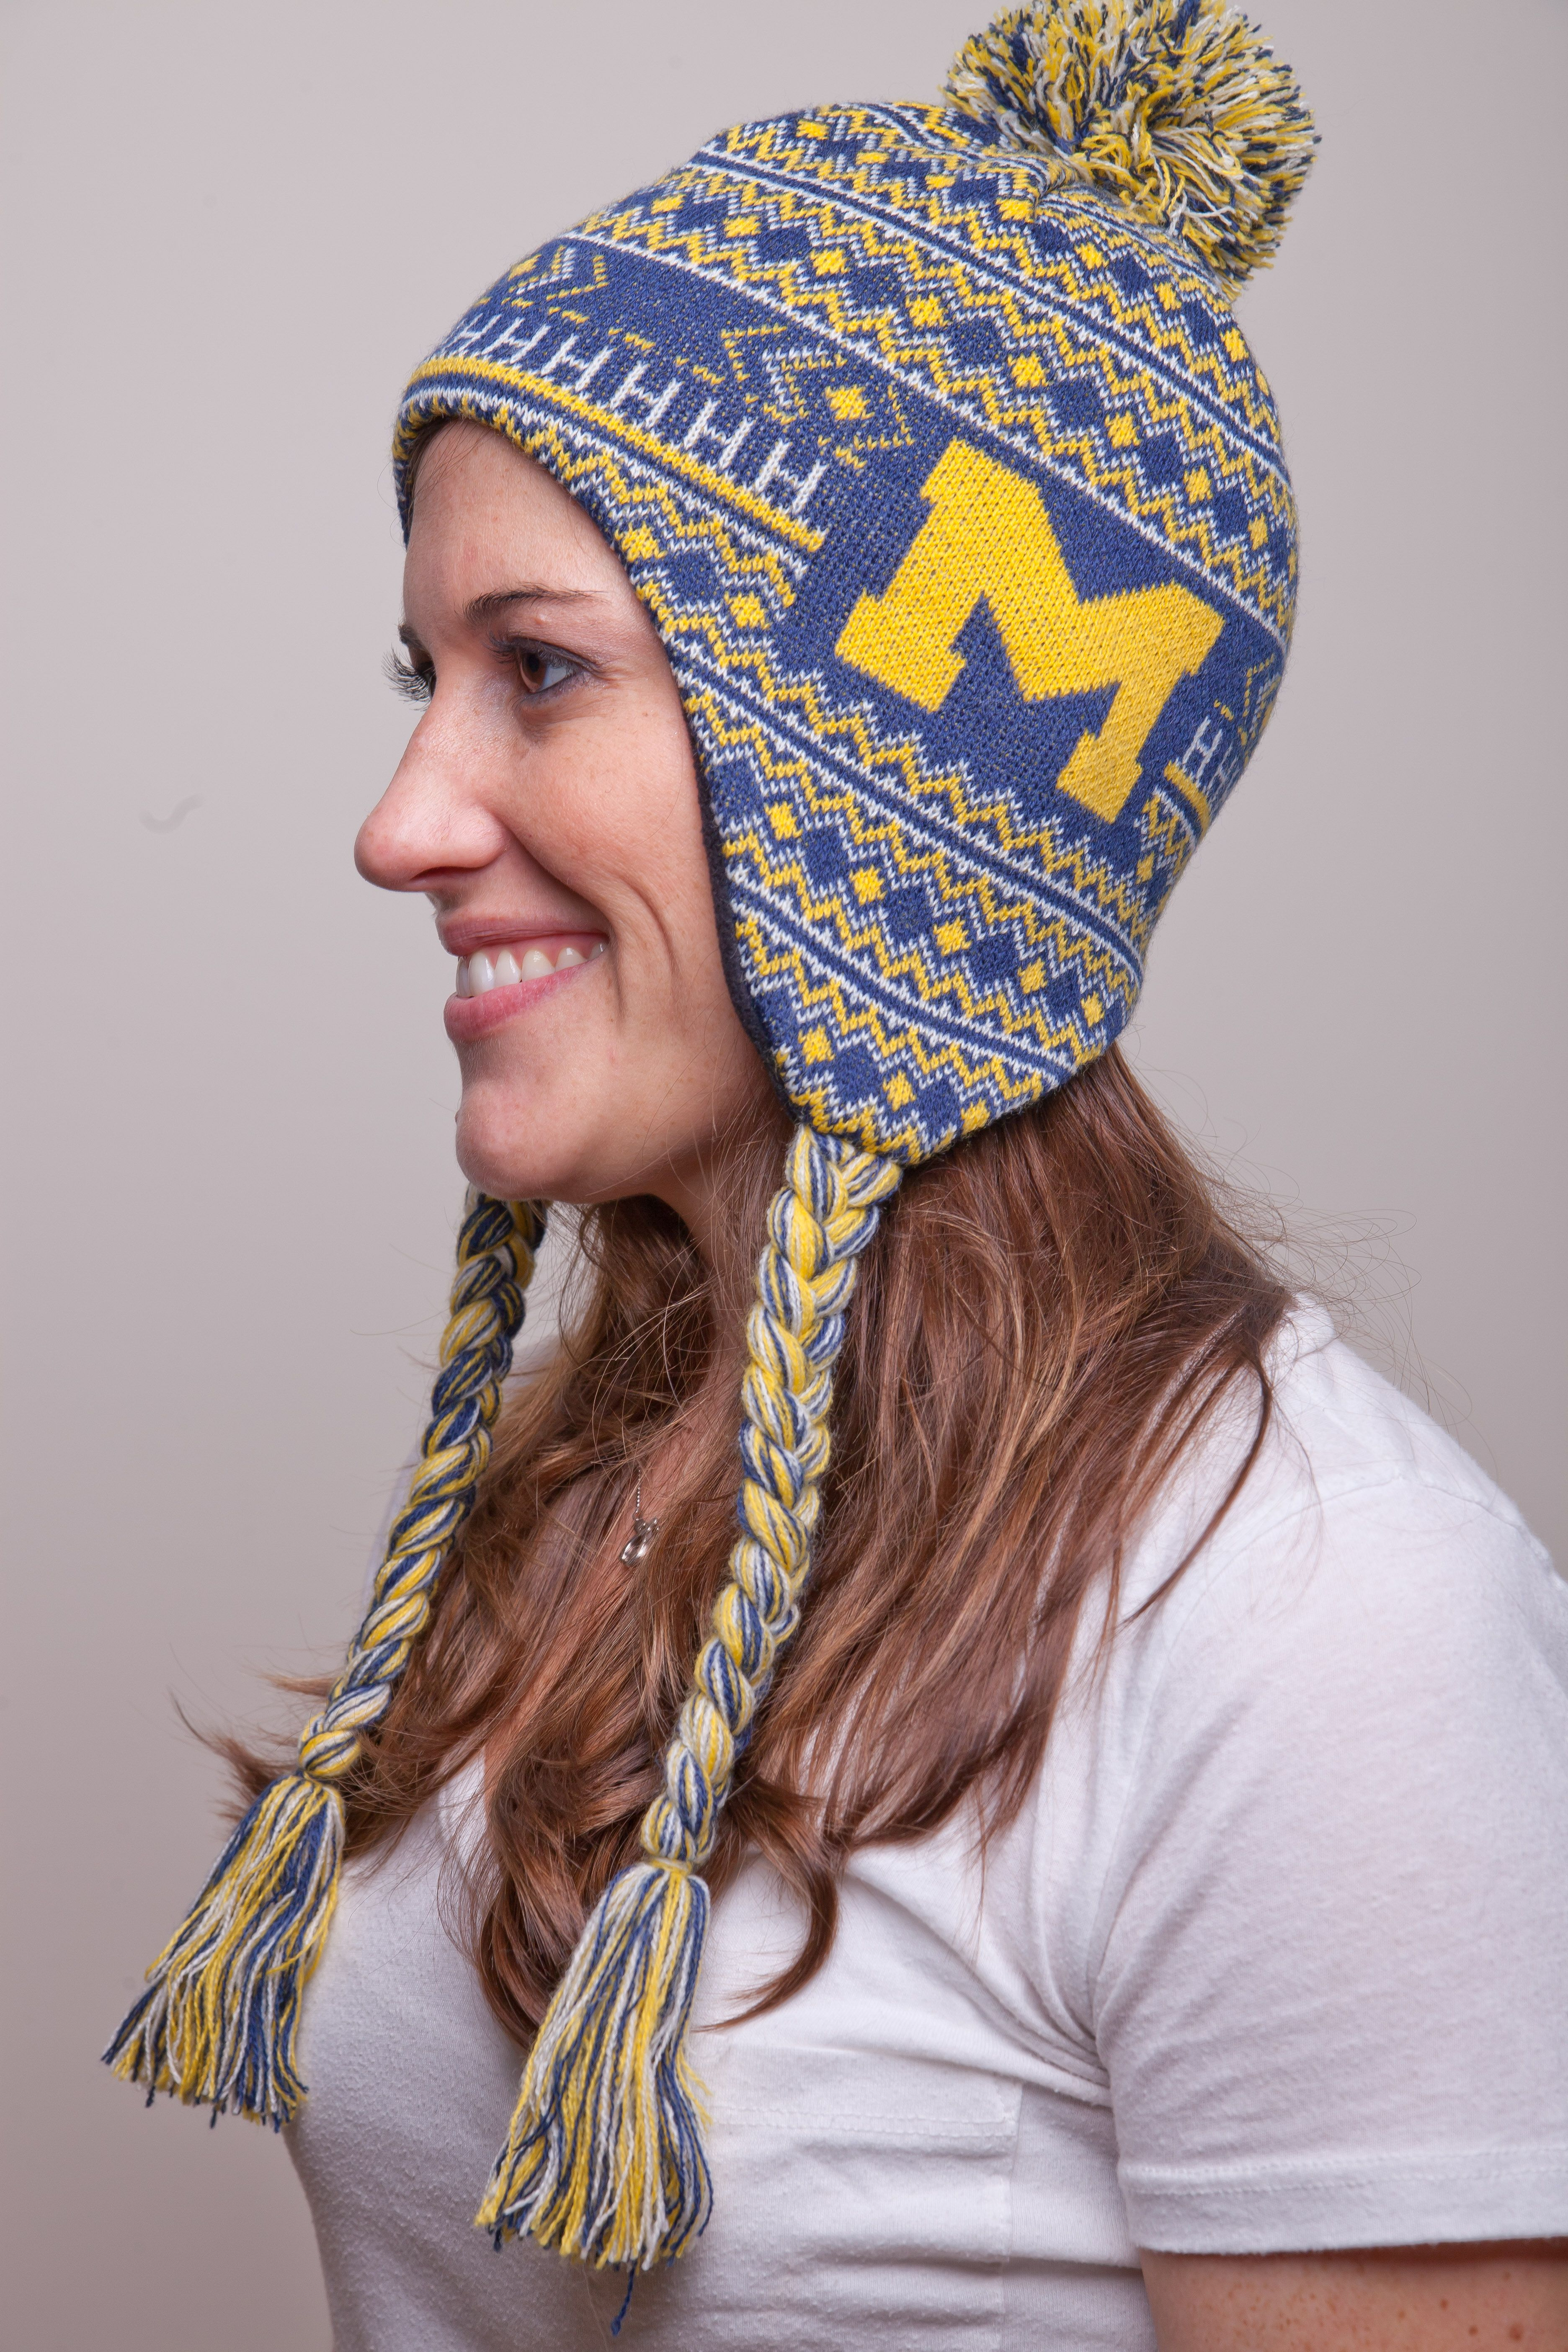 8c3f71fd6eabe Our University of Michigan winter hat is a favorite among Wolverines fans.  Stay warm at fooball games or give as the perfect  goblue holiday gift.   19.99